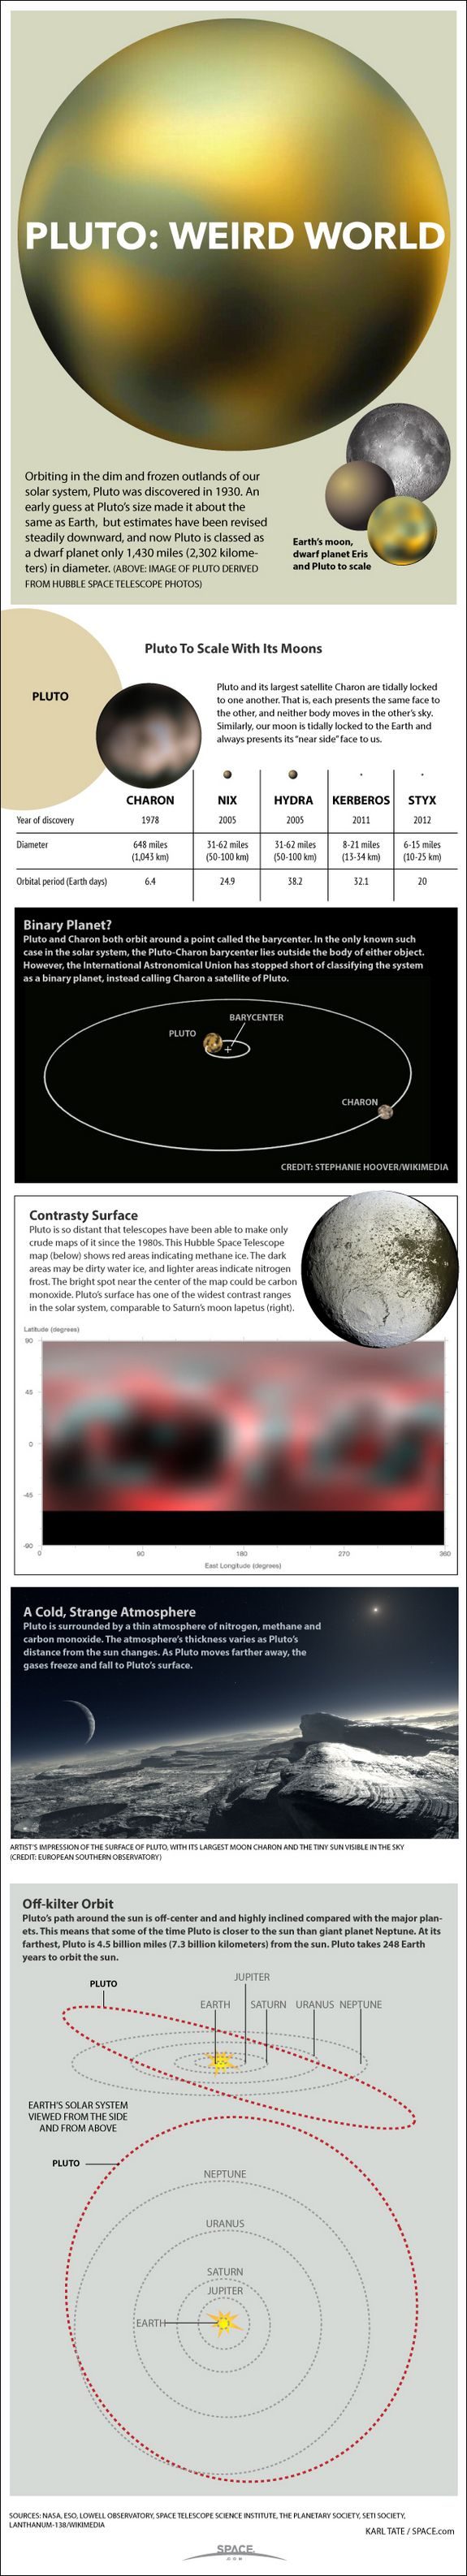 Pluto's weird features explained in infographic.